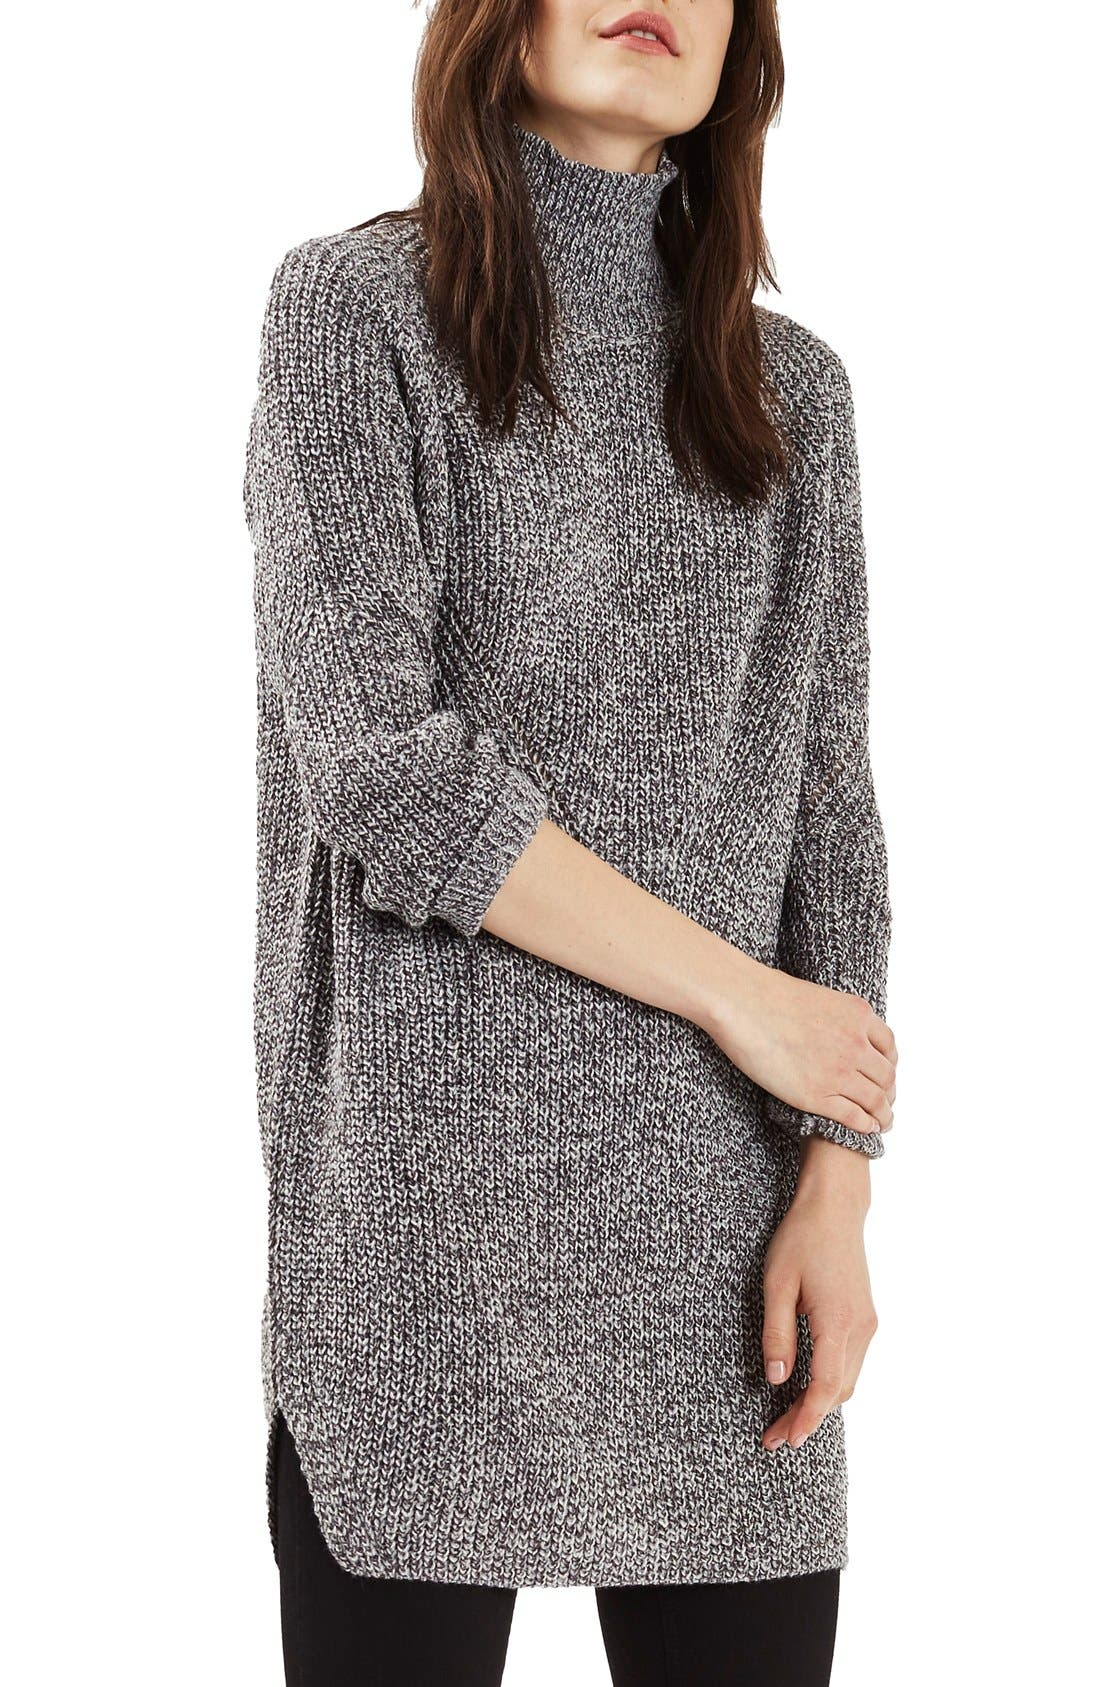 Main Image - Topshop Grunge Funnel Neck Sweater Dress